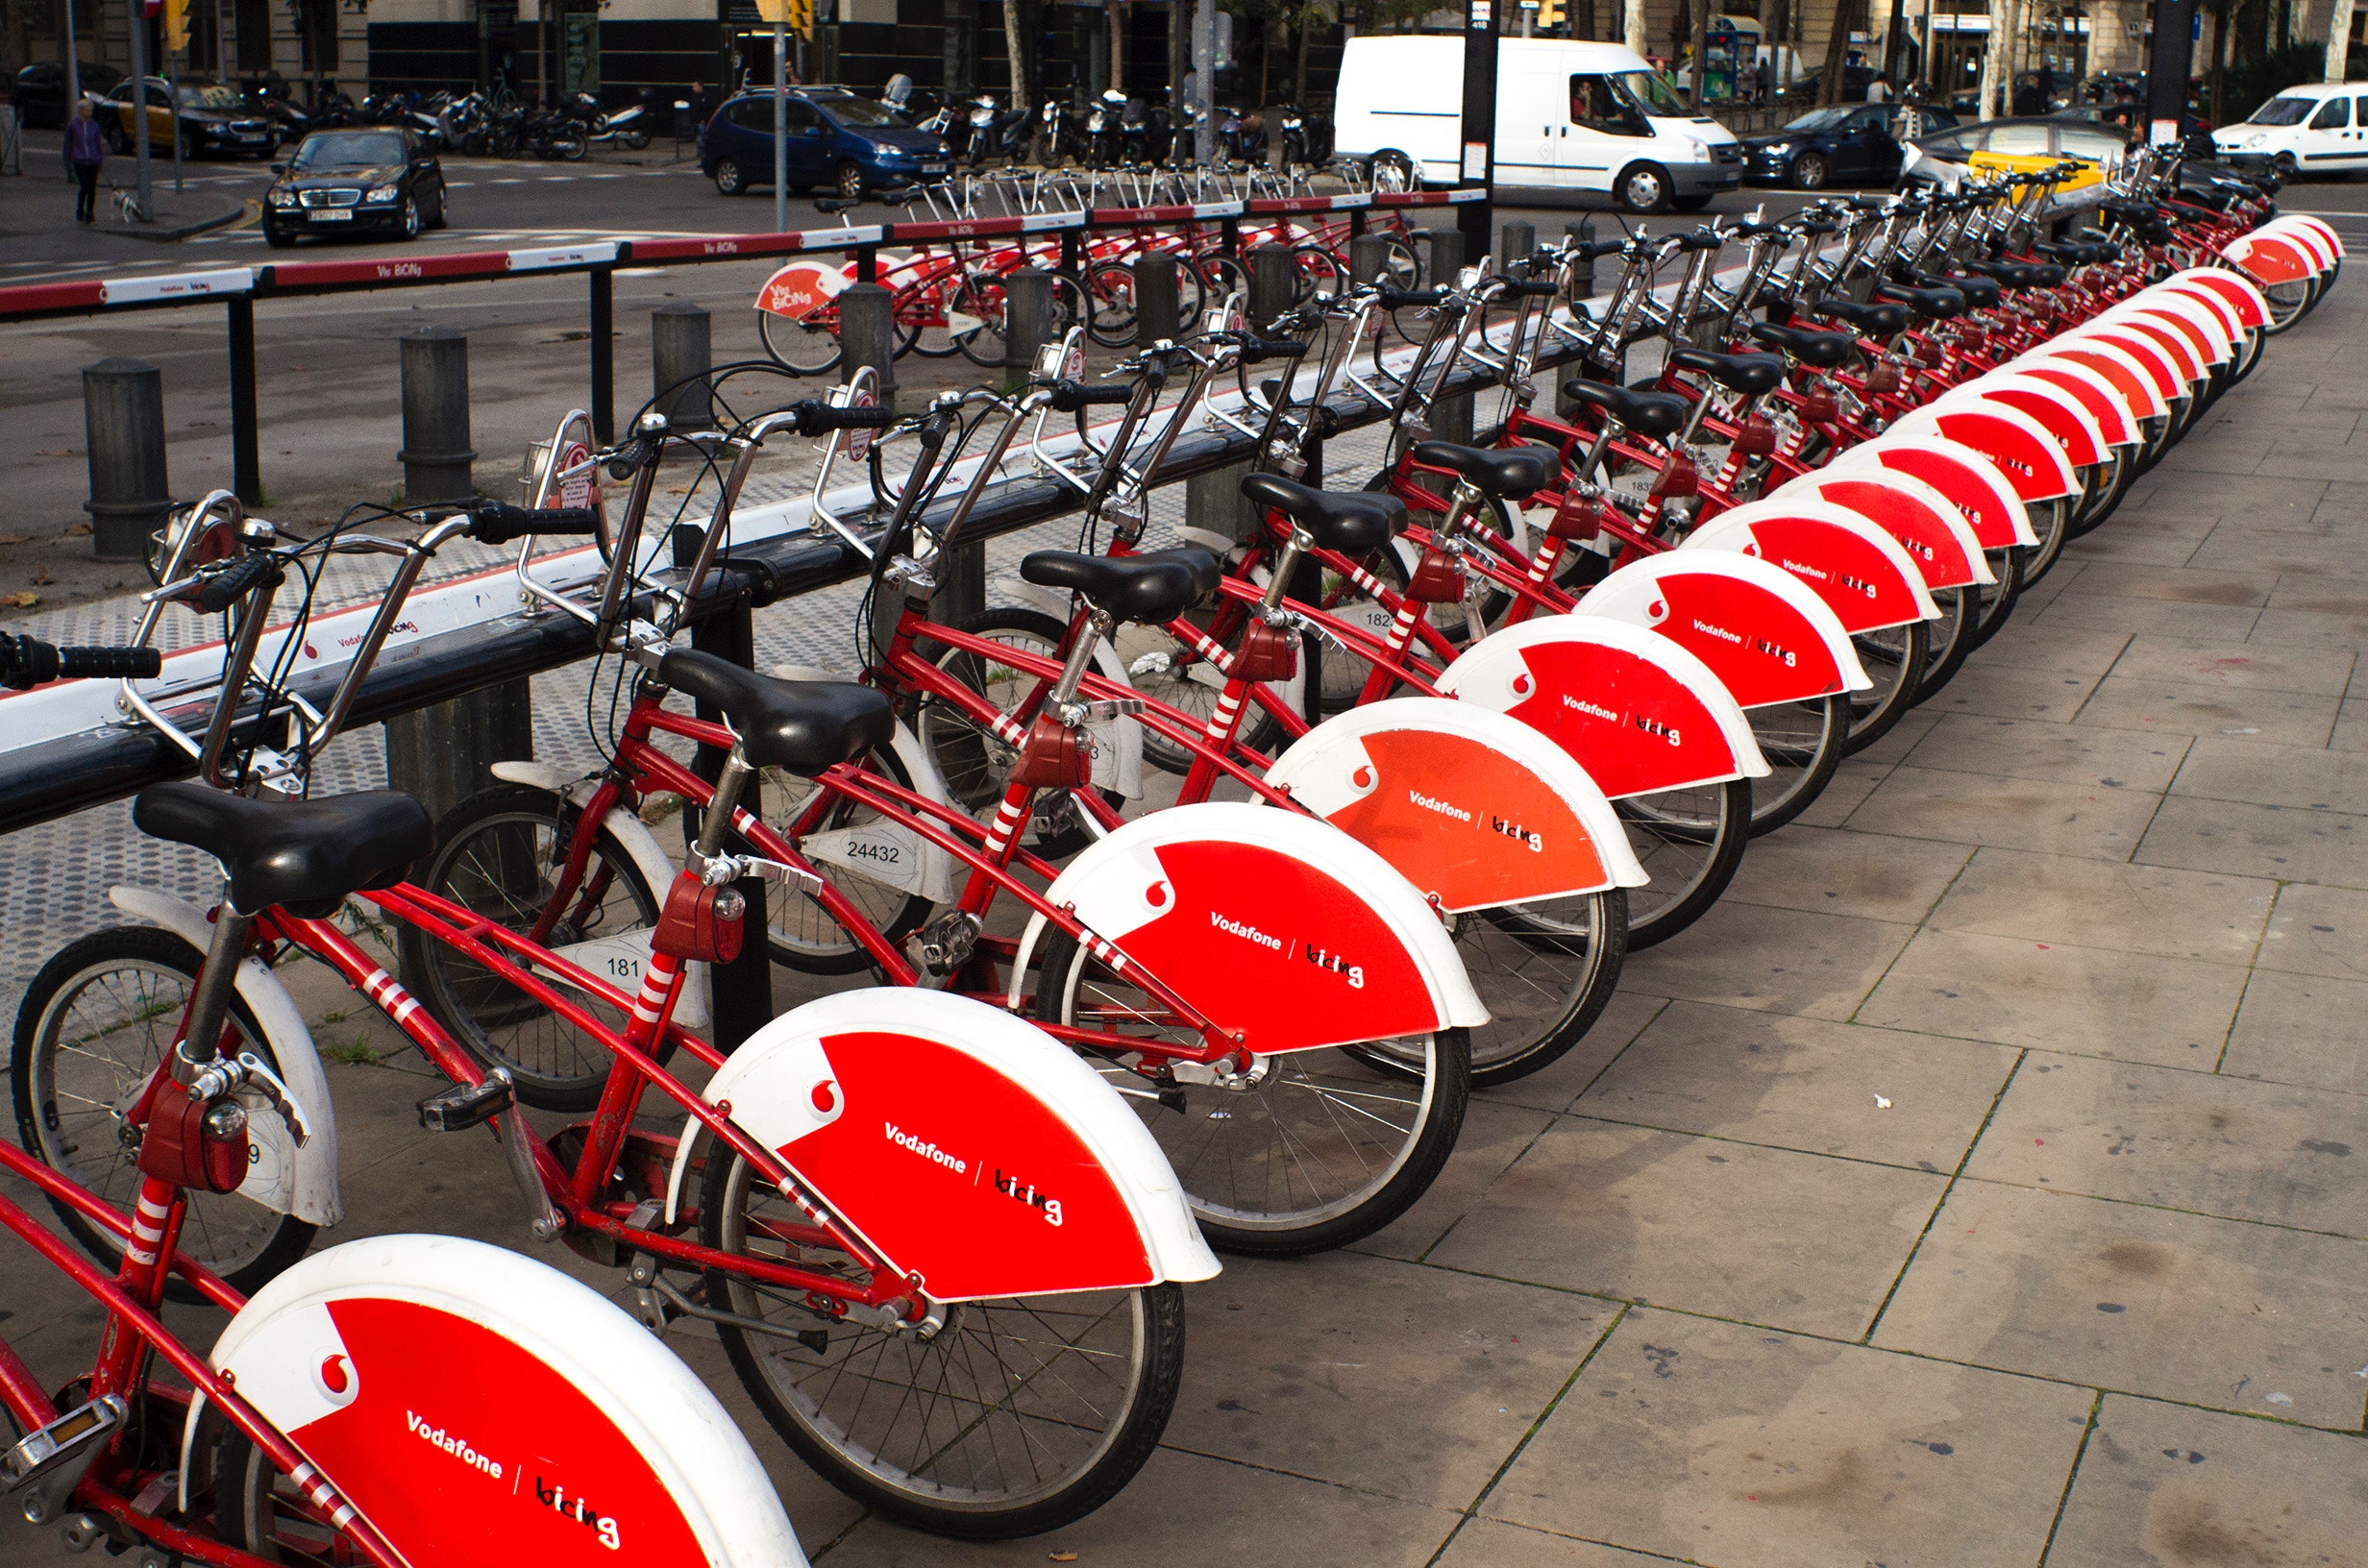 Parked red and white bicycles photo